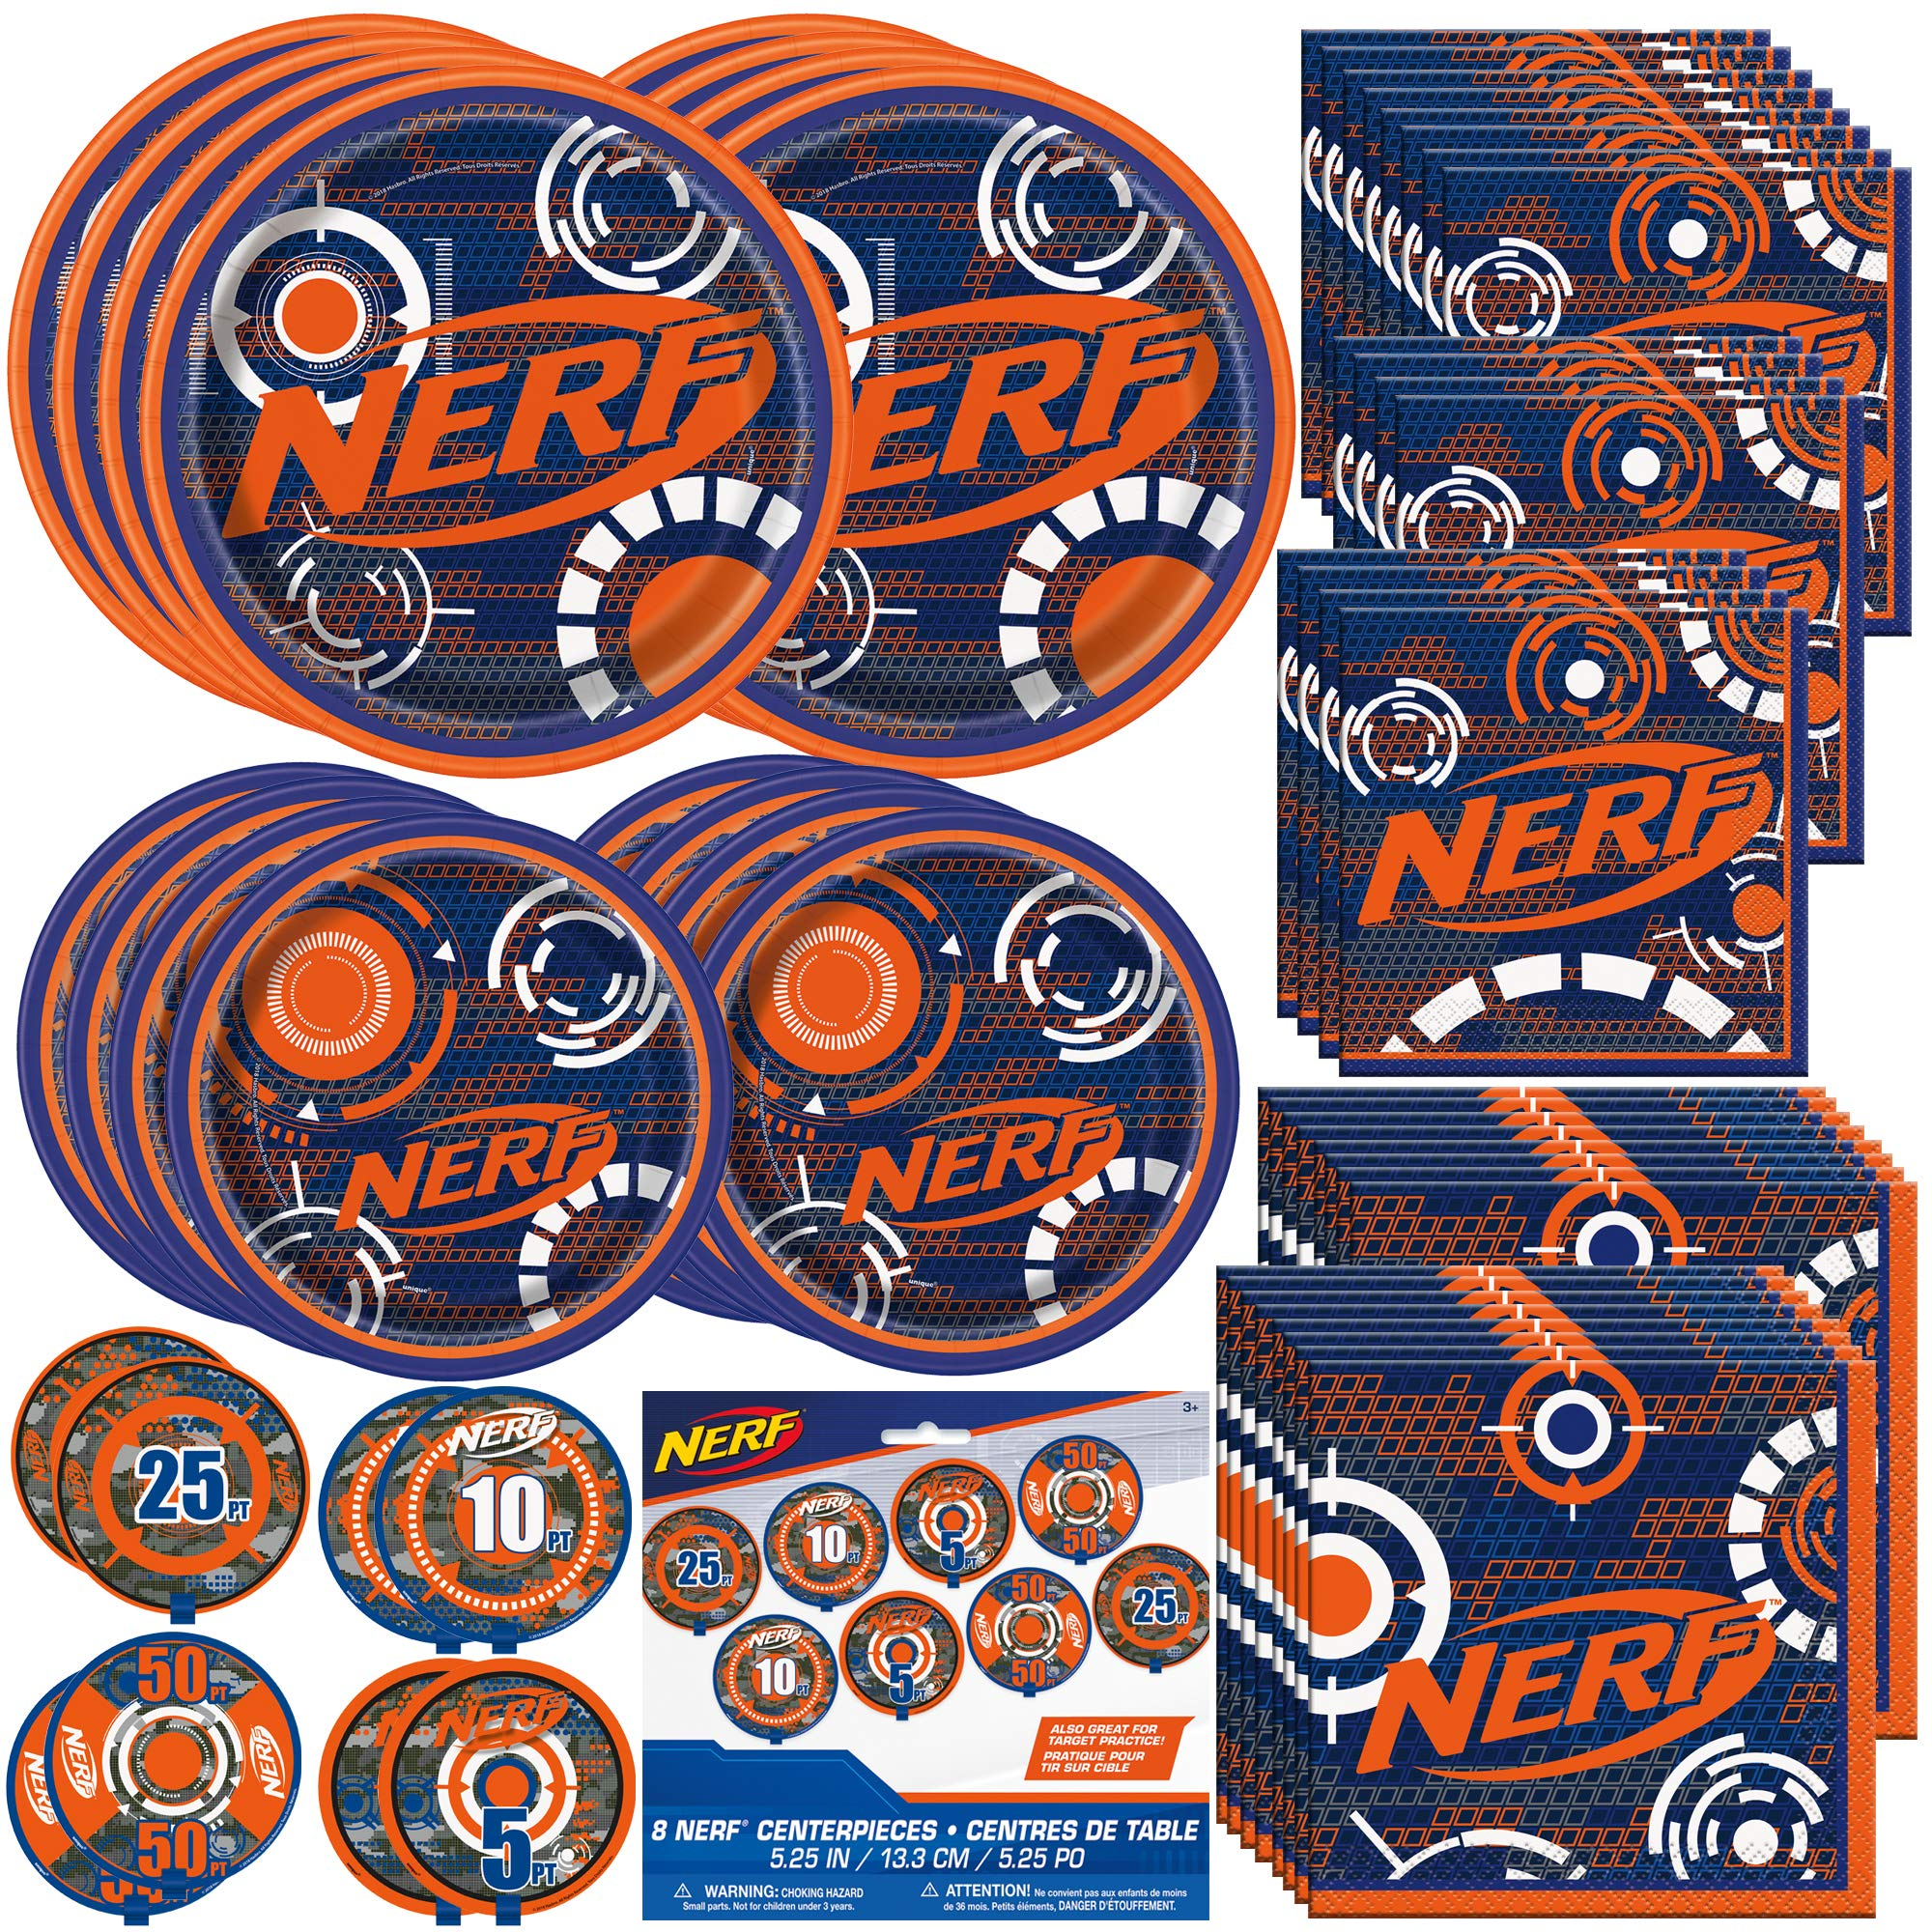 Unique Nerf Party Bundle | Beverage & Luncheon Napkins, Dinner & Dessert Plates, Bull's Eye Decoration | Great for Interactive Sports Birthday Themed Parties by Unique